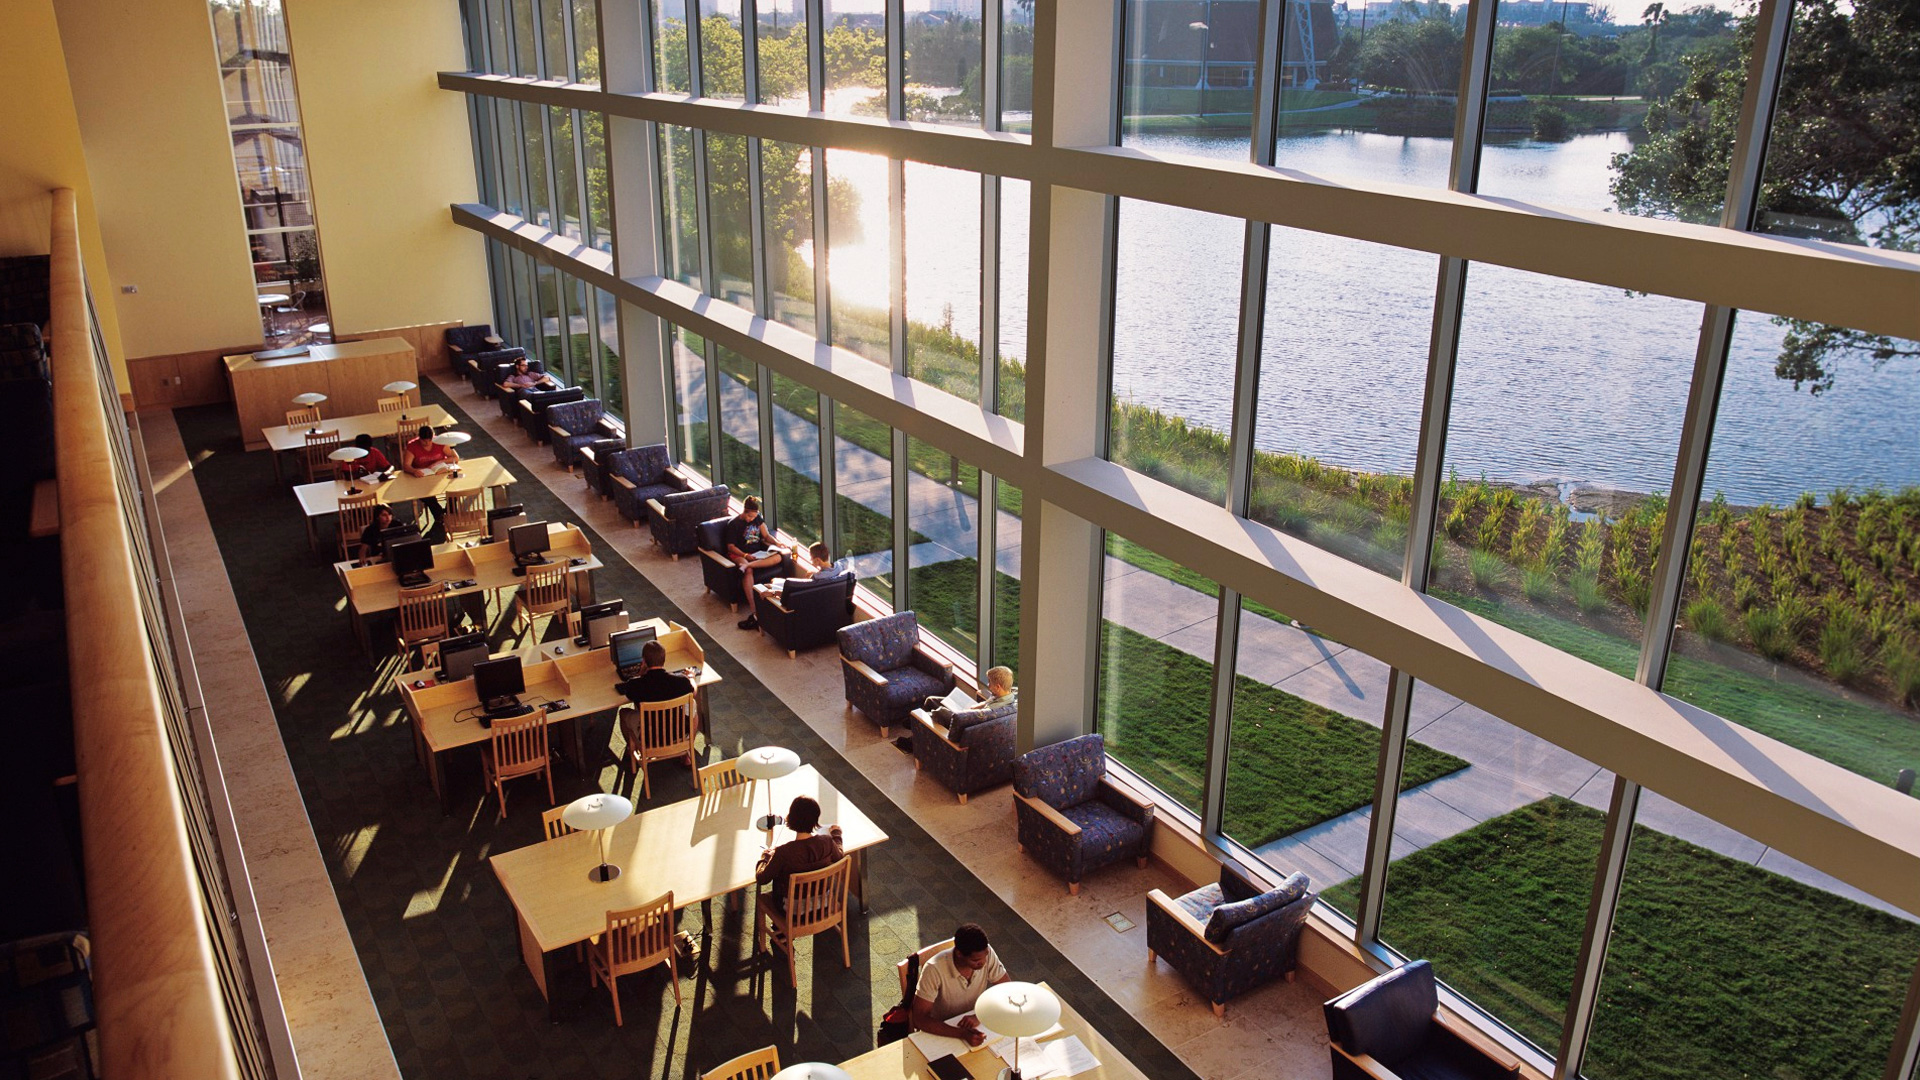 Eckerd College | Armacost Library